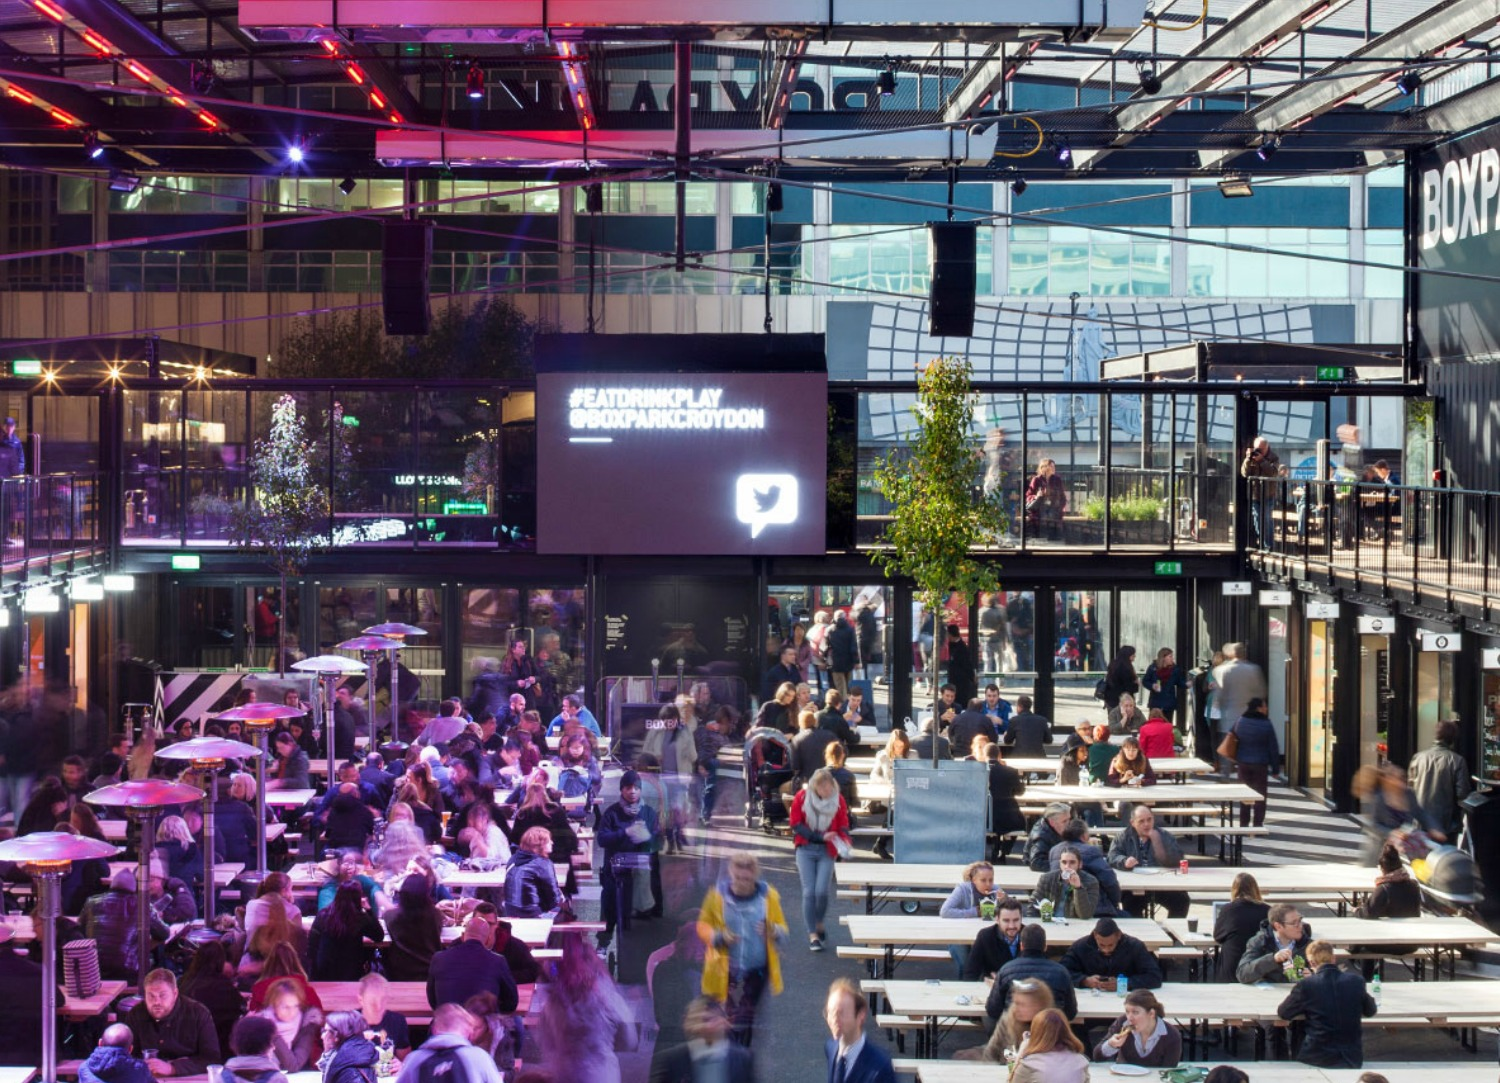 The inside of Boxpark in Croydon with people sat down